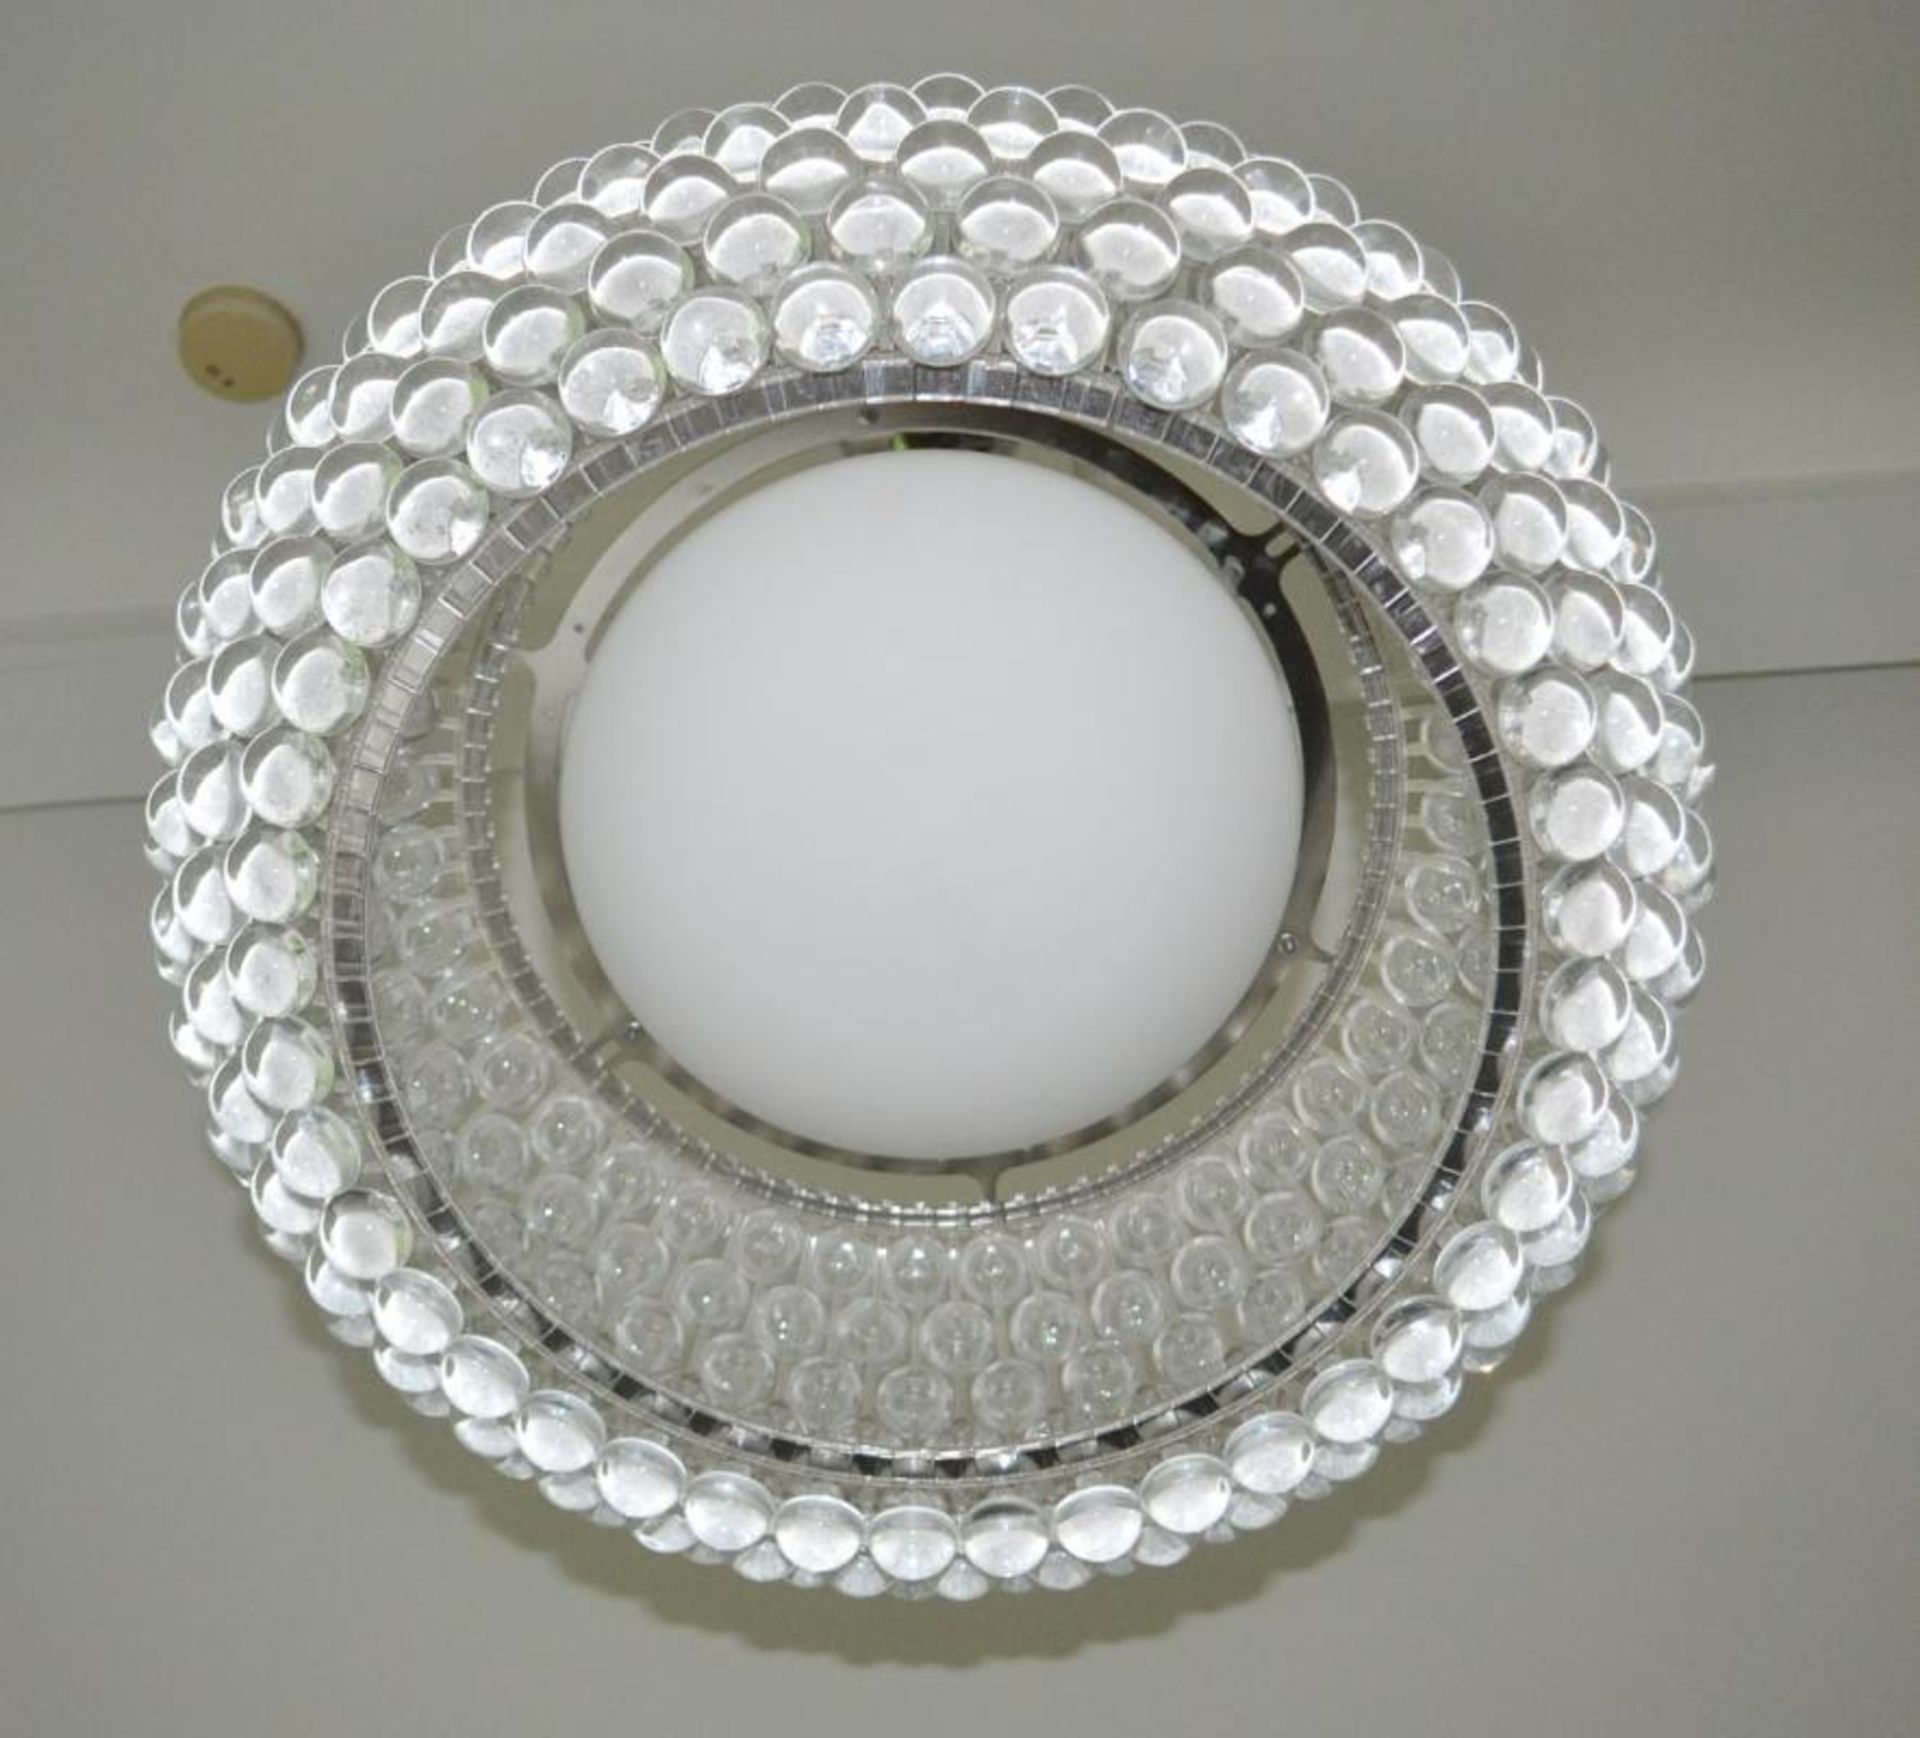 Lot 4554 - Clear Glass Bubble Light Set - CL439 - Location: Ilkey LS29 - Used In Good Condition